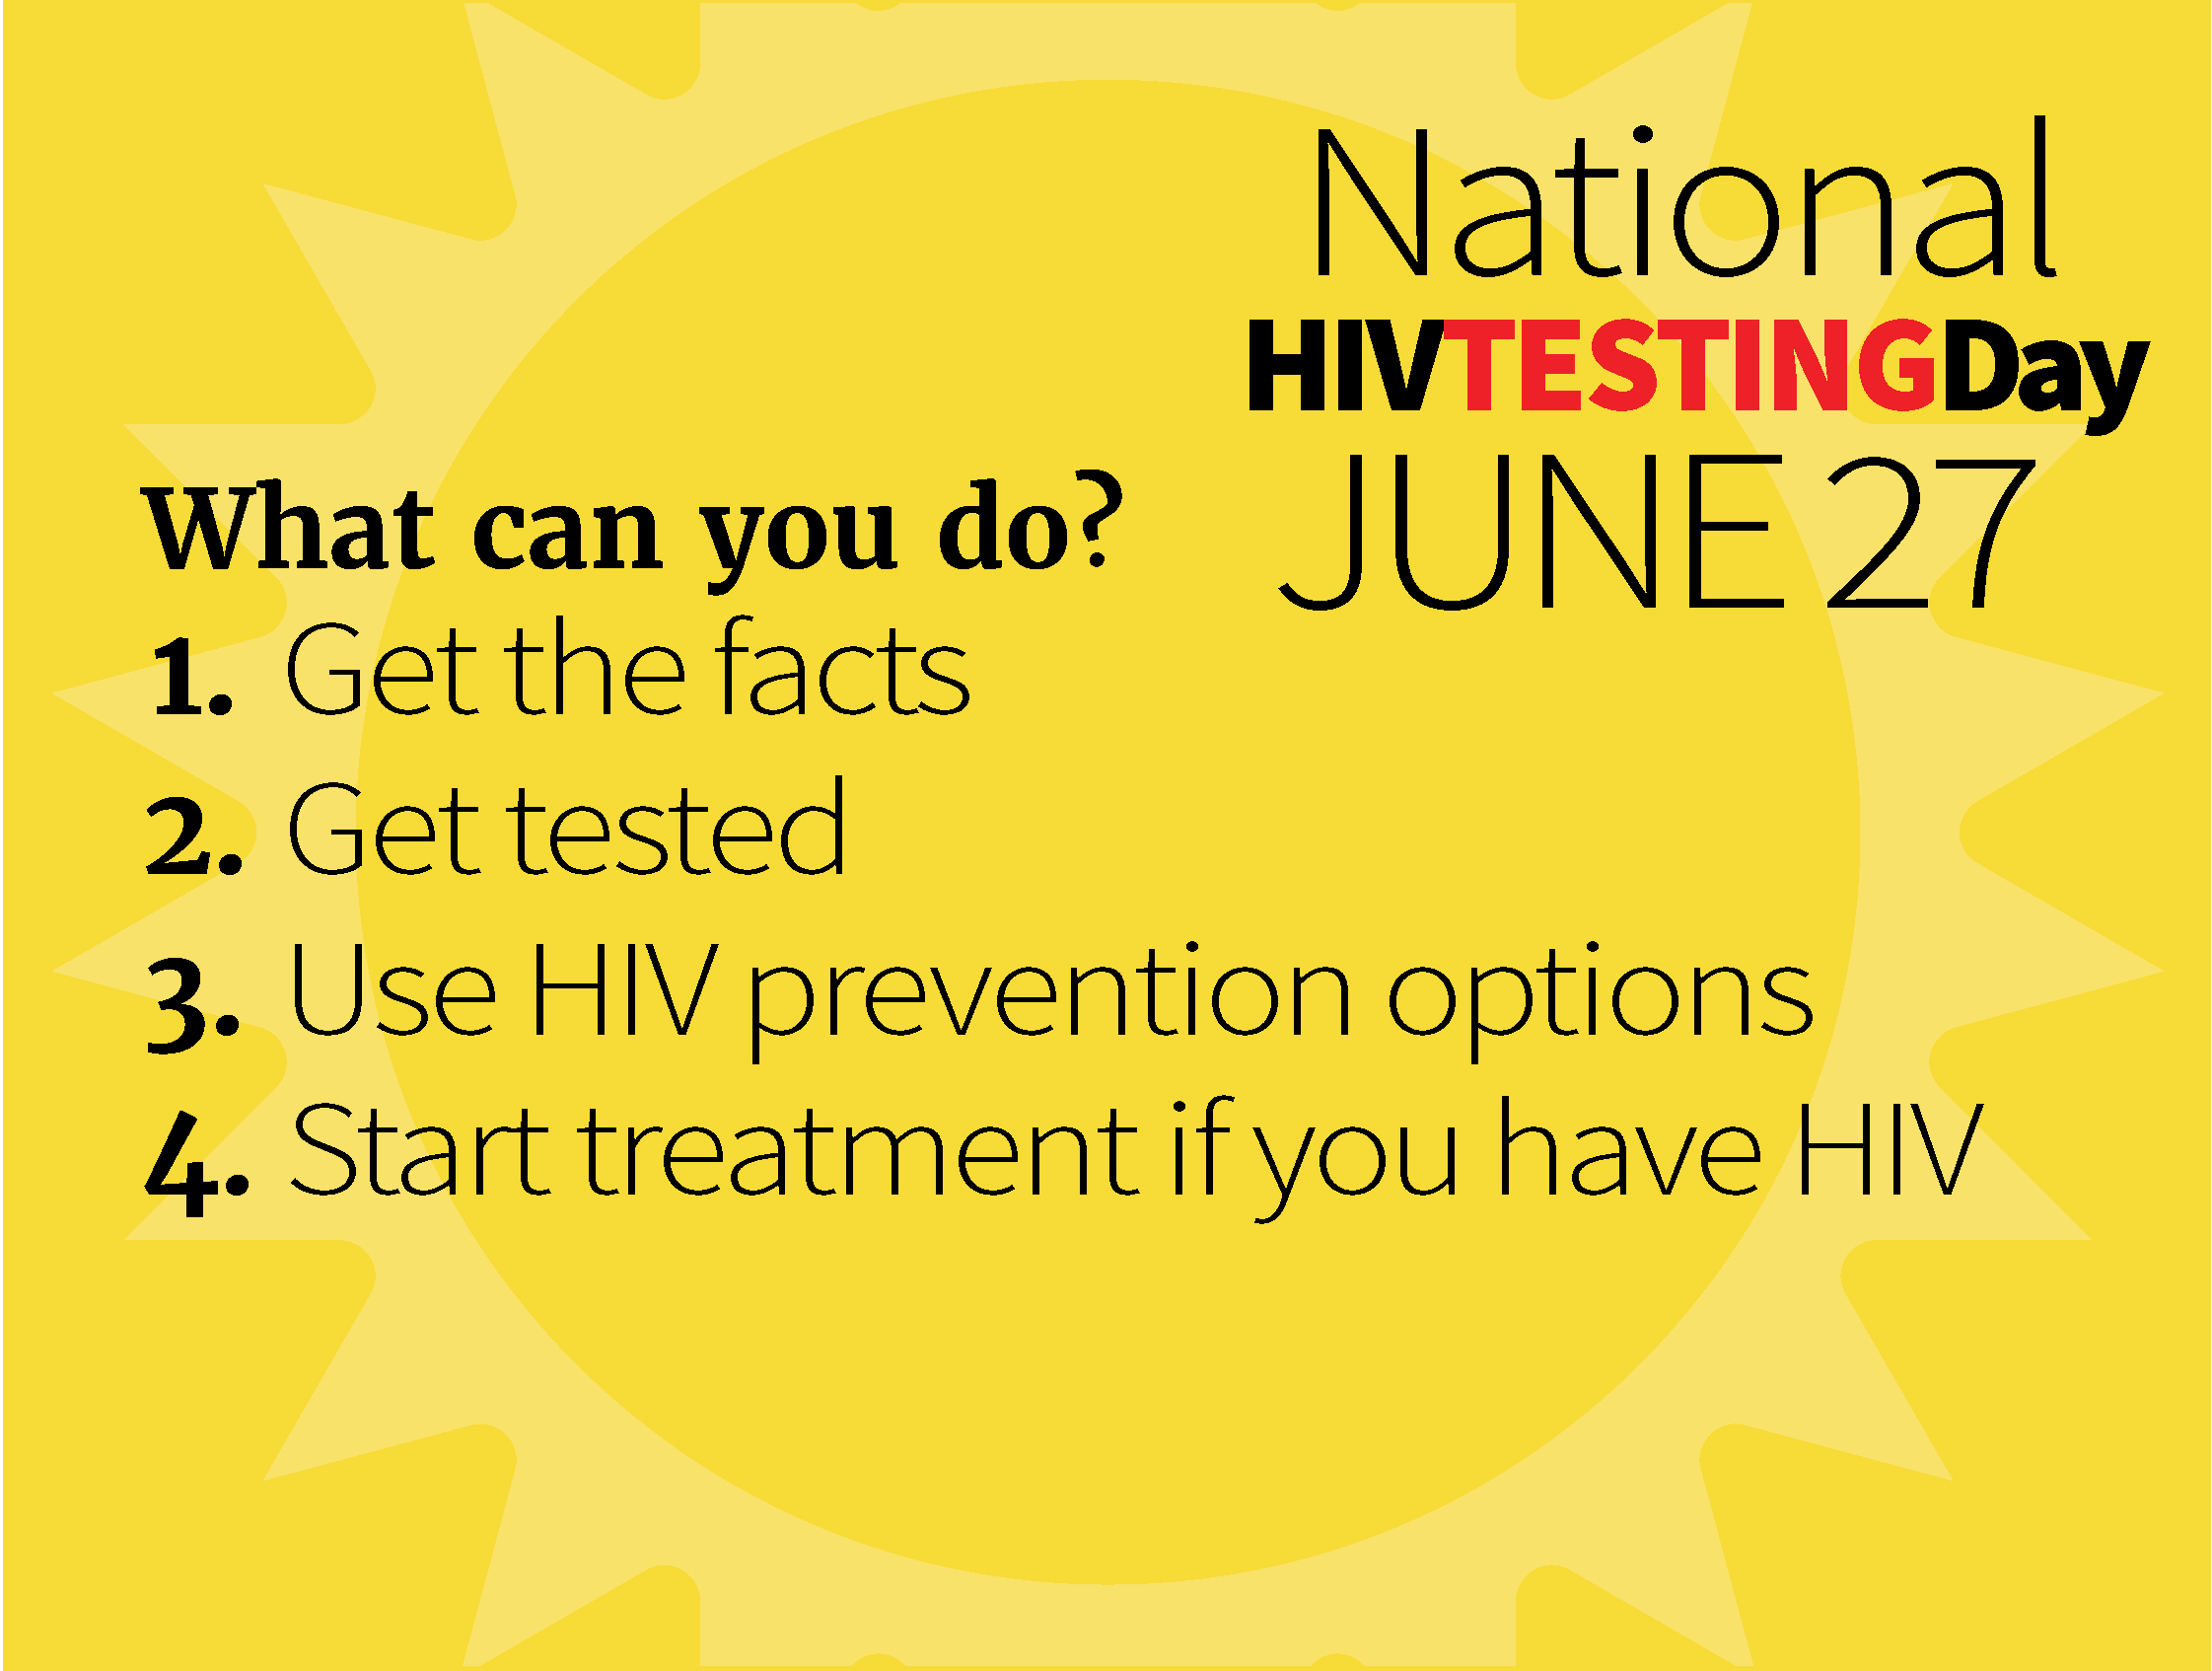 National HIV Testing Day image with the date June 27